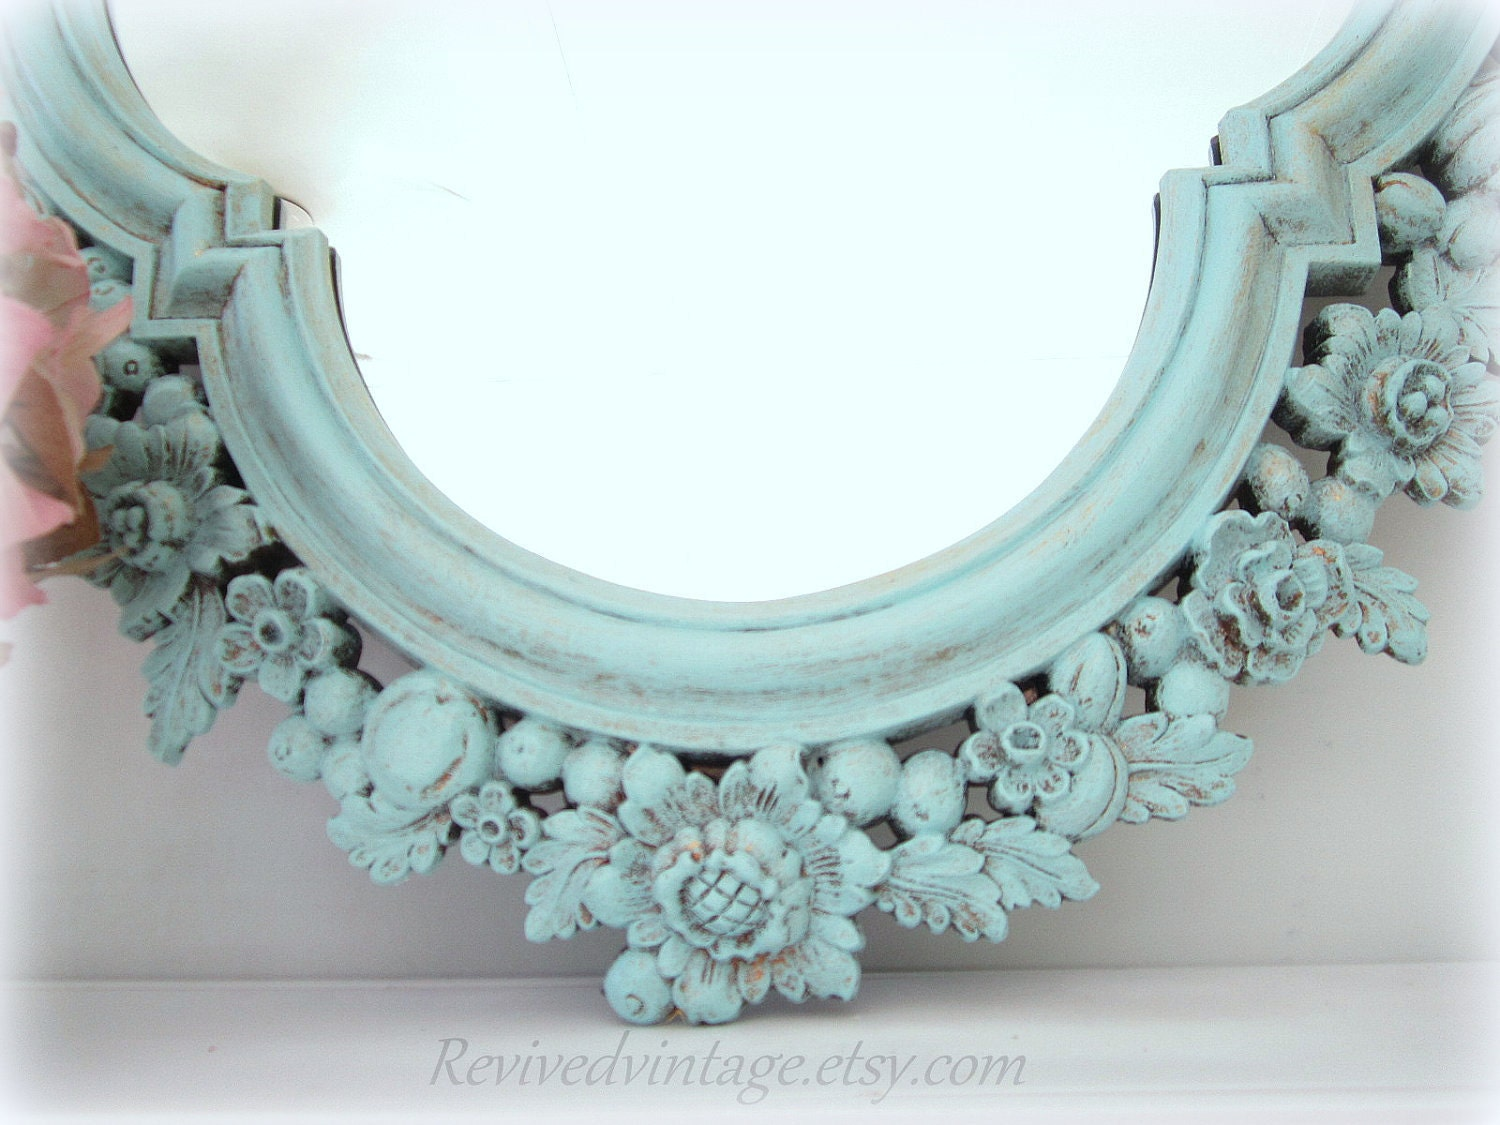 Decorative vintage mirrors for sale large mirror shabby chic for Mirrors for sale